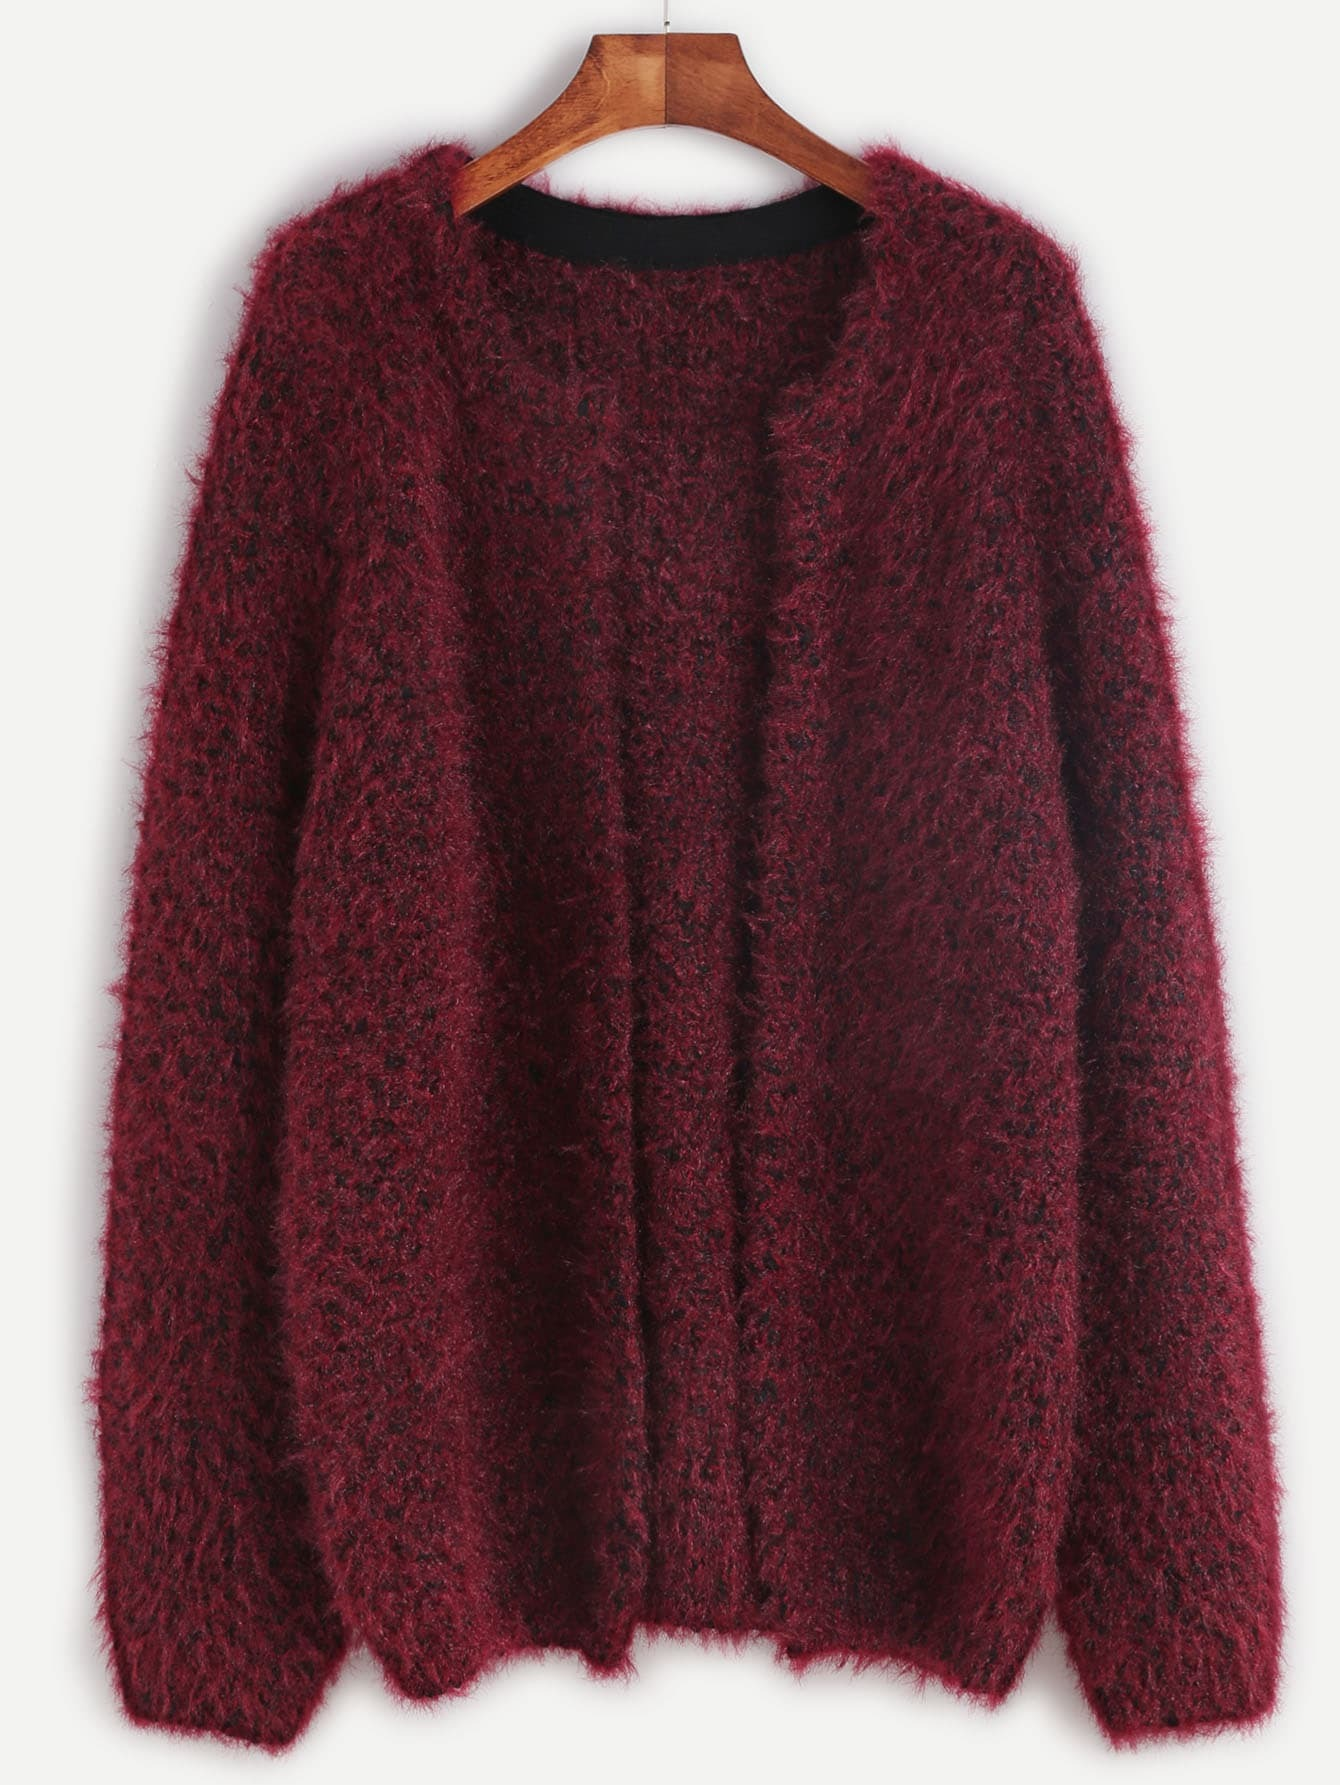 Burgundy Open Front Fluffy Sweater Coat EmmaCloth-Women Fast ...